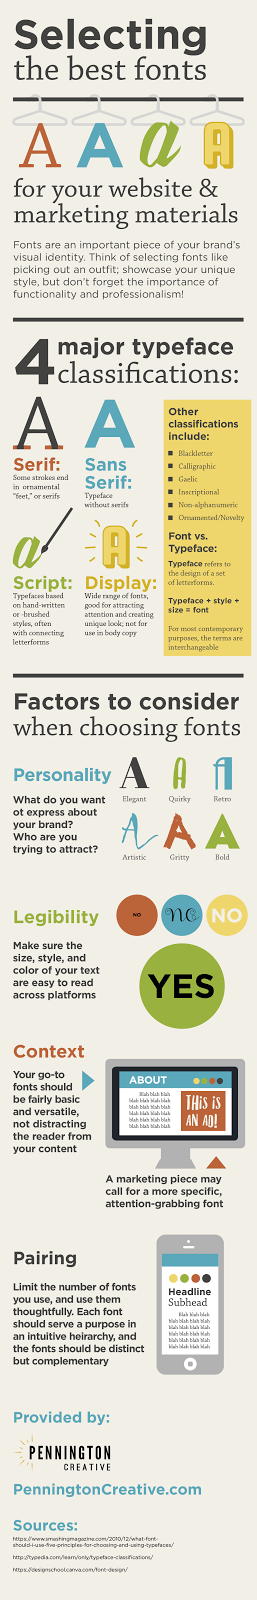 Selecting The Best Fonts #Infographic